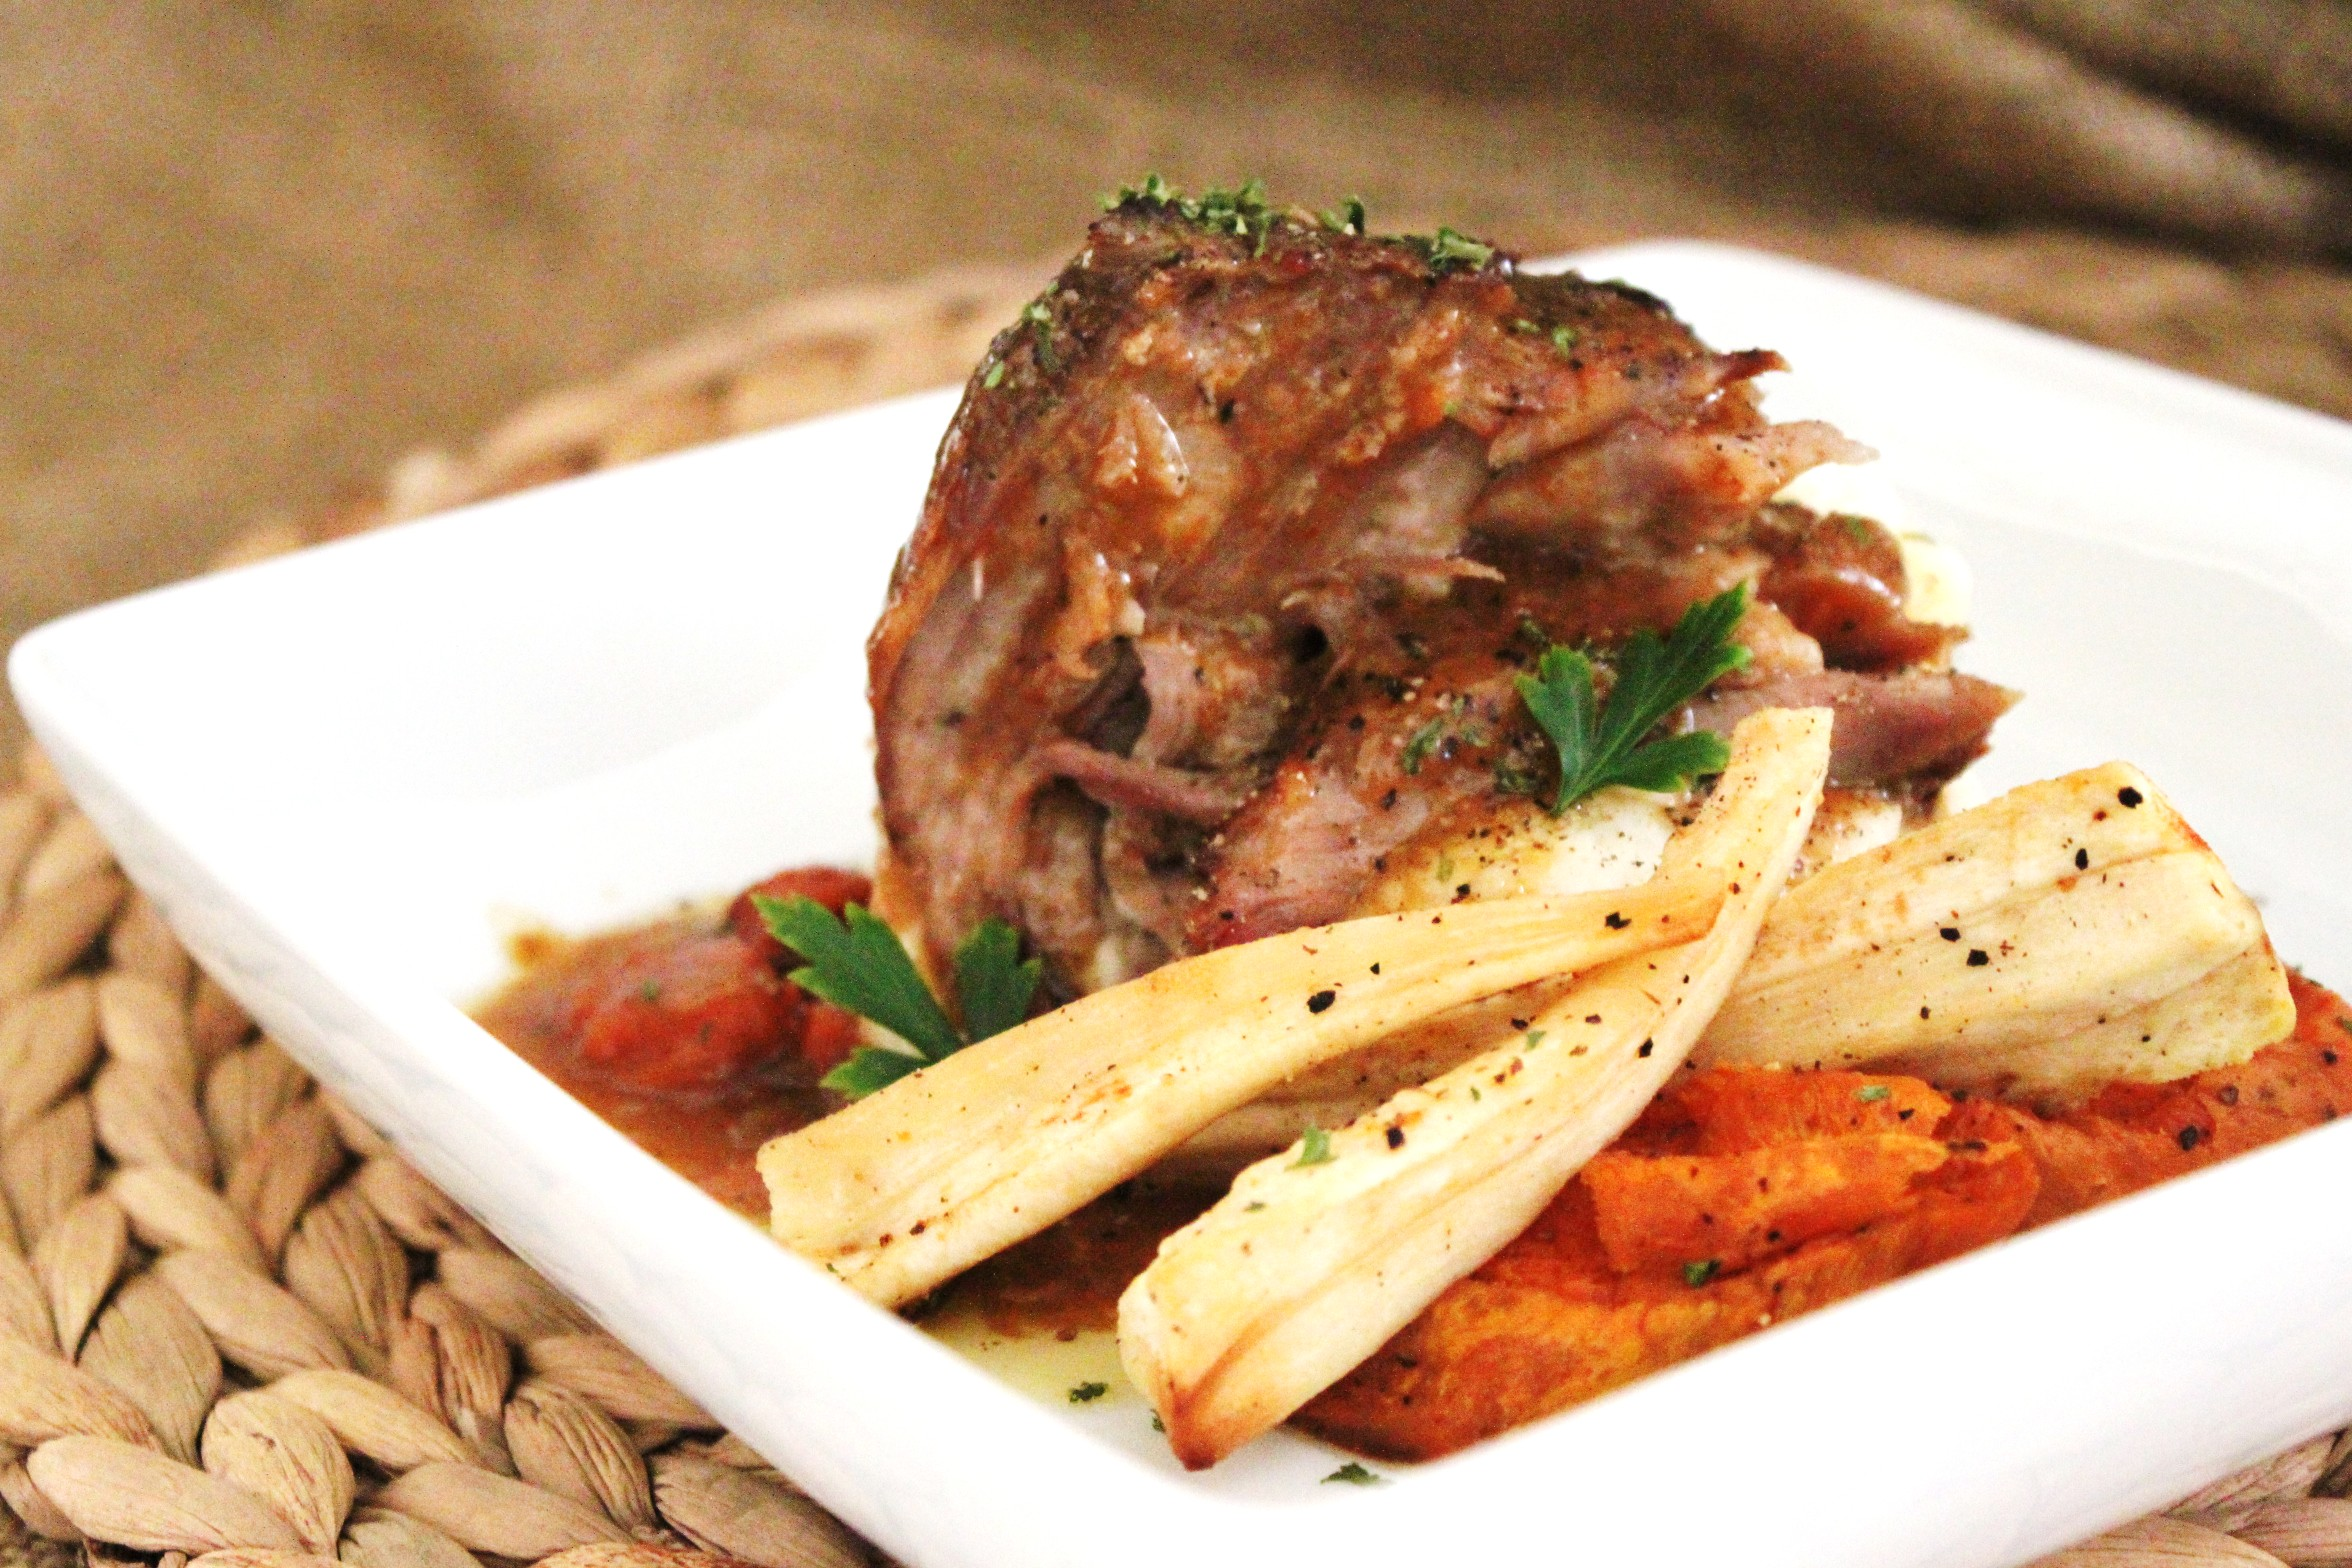 Sunday Supper – Braised Pork Shoulder with Roasted Root Vegetables